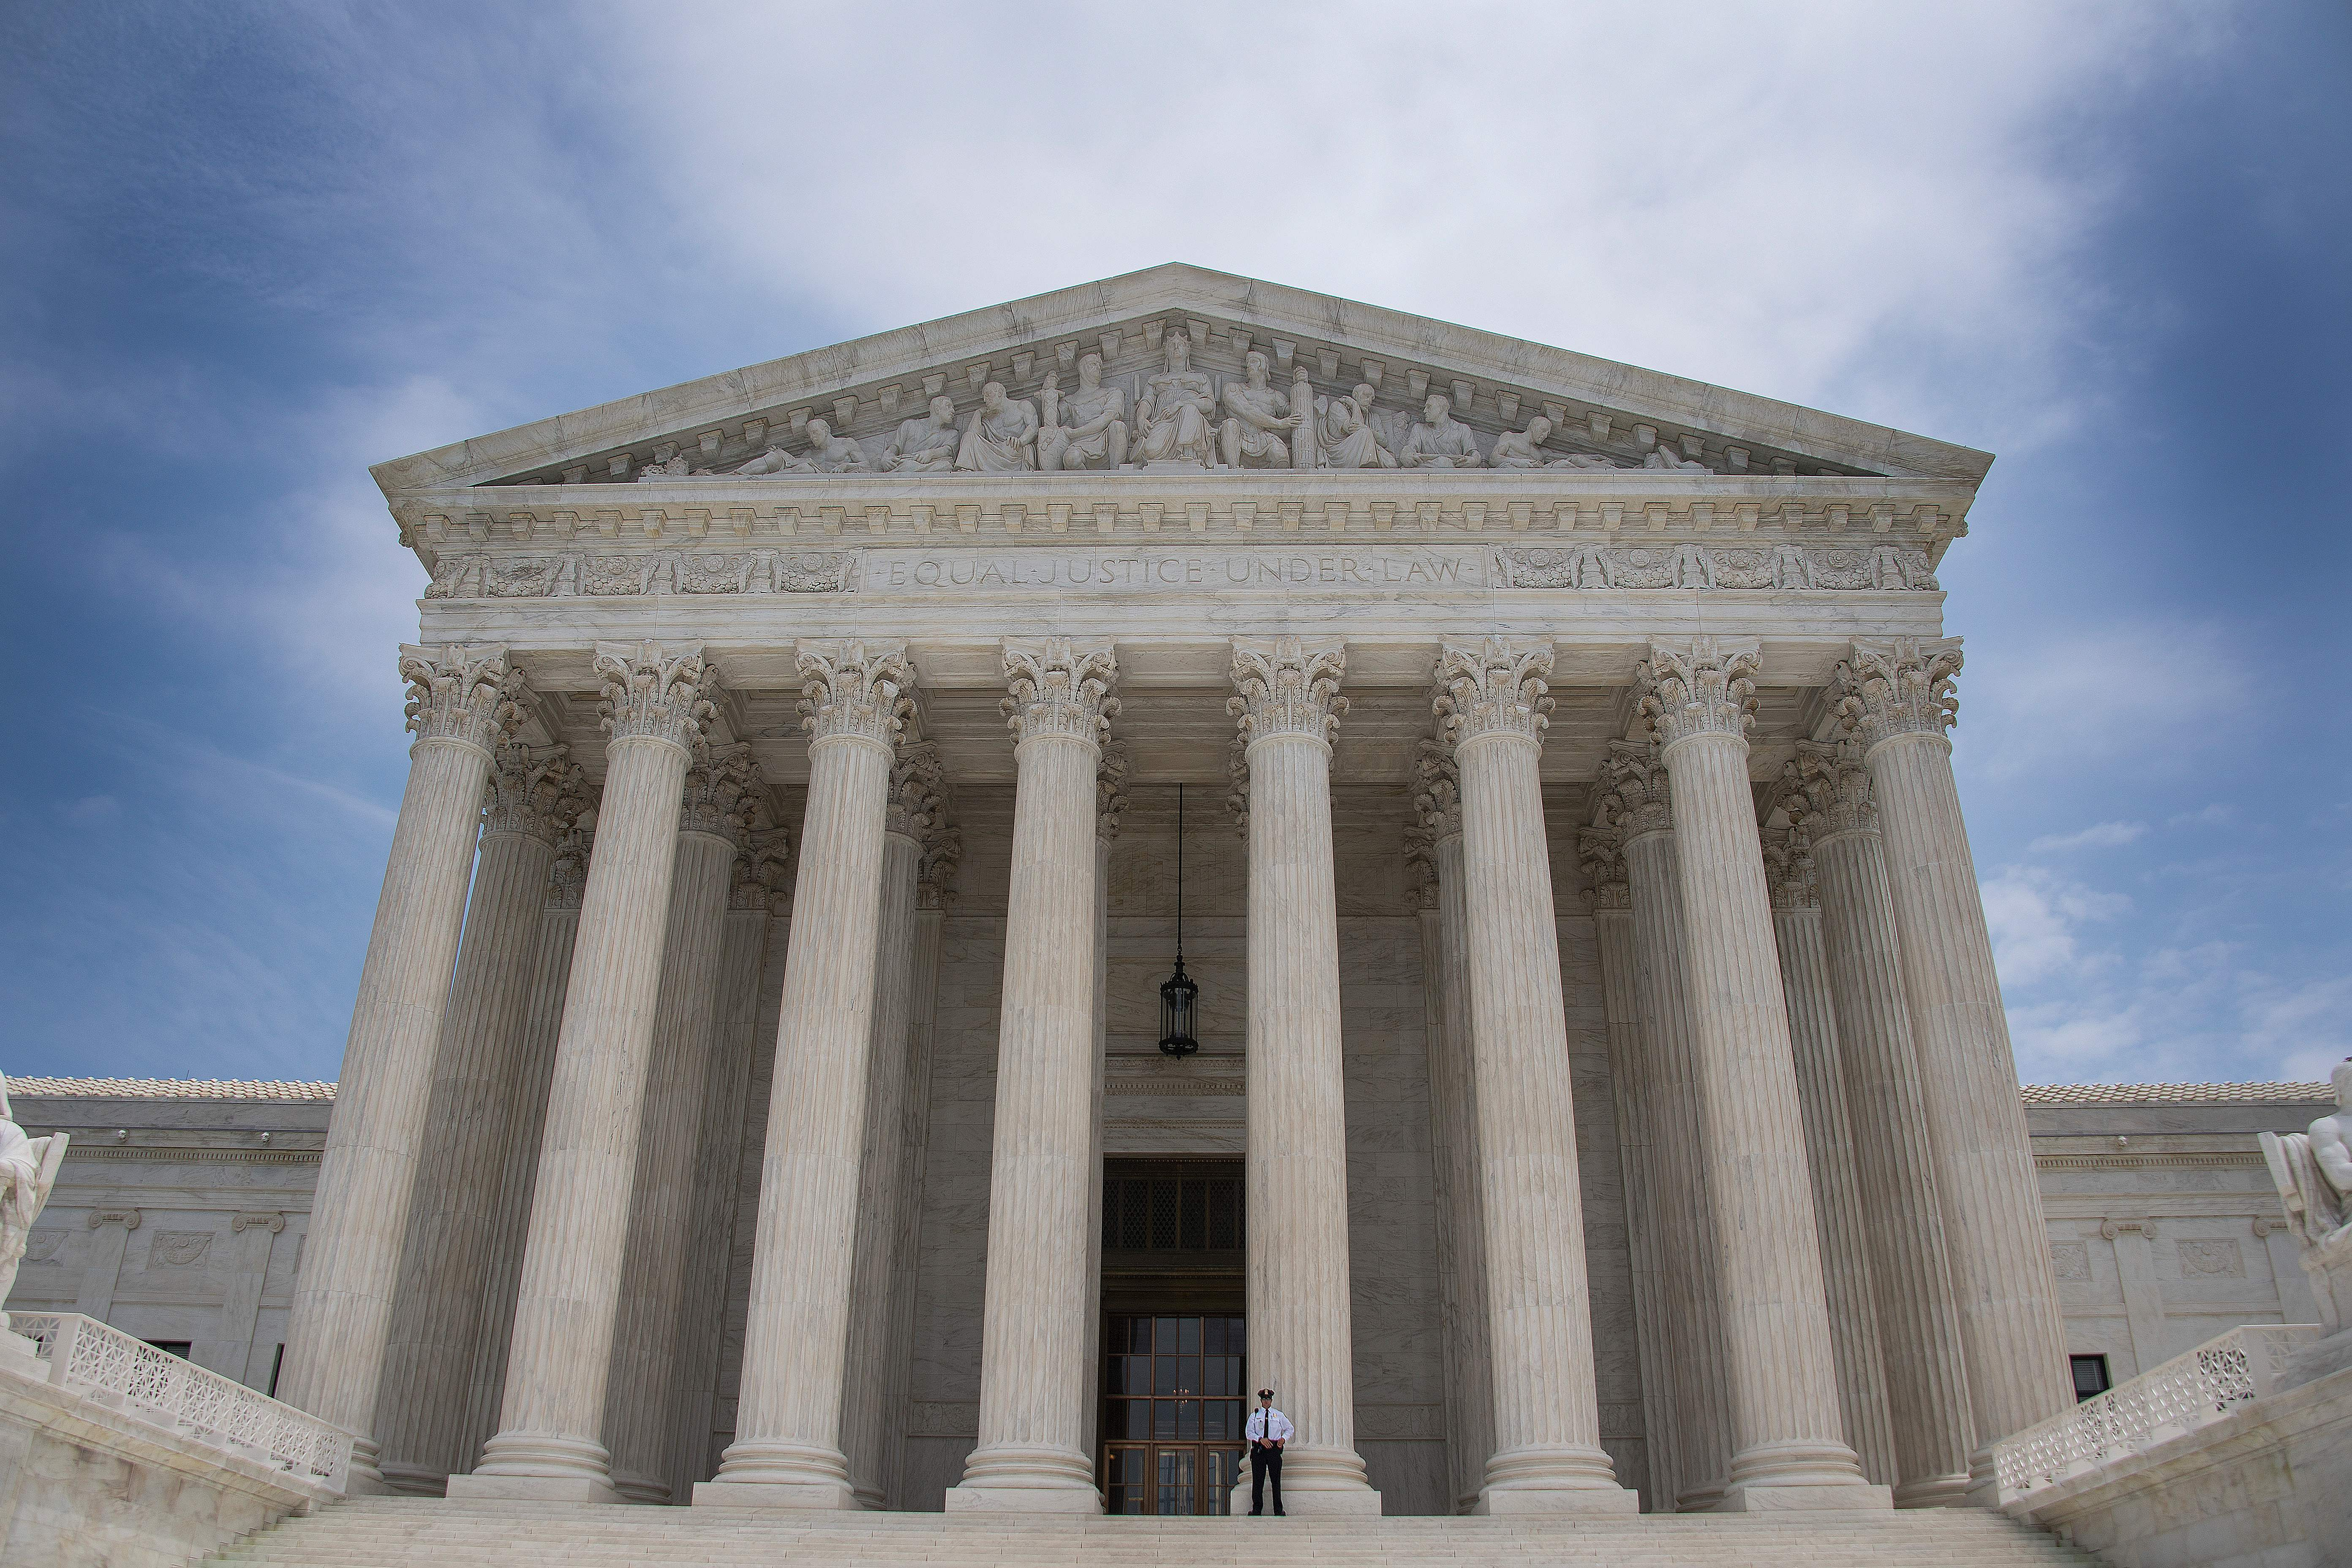 The Supreme Court as seen on June 15, 2017. (Jim Watson/AFP/Getty Images)